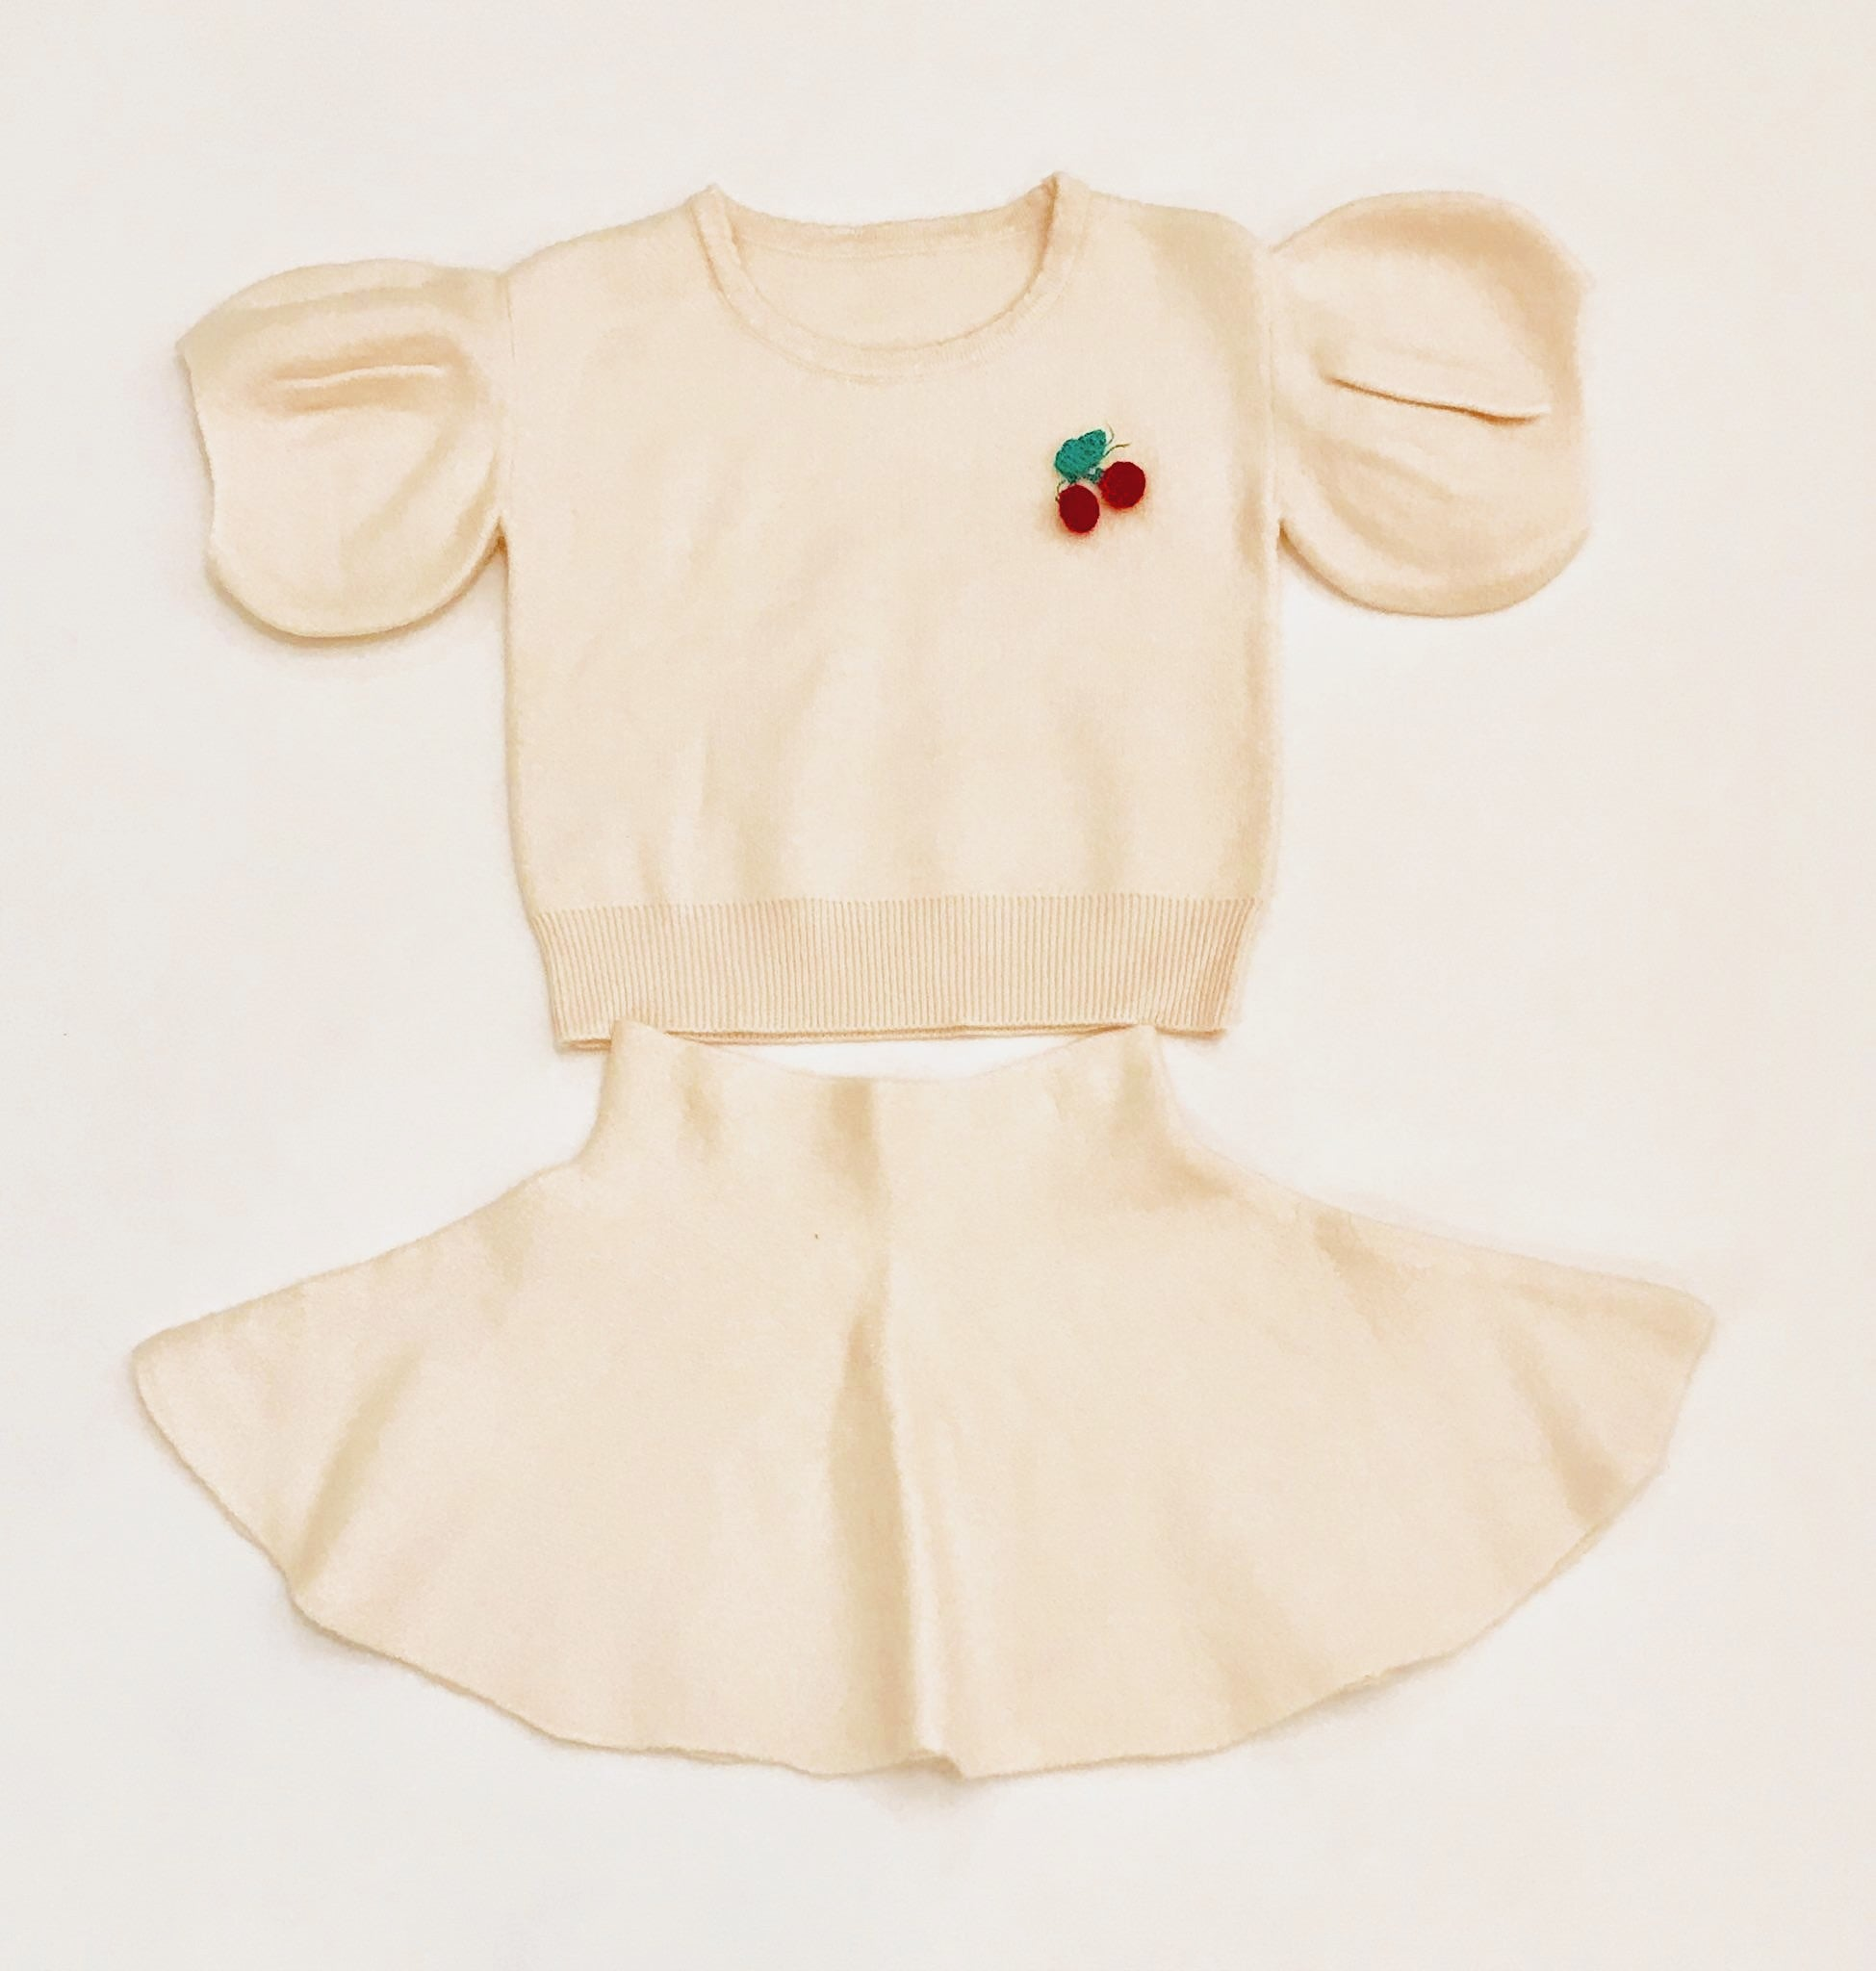 White bell sleeve toddler sweater dress (2 pieces)